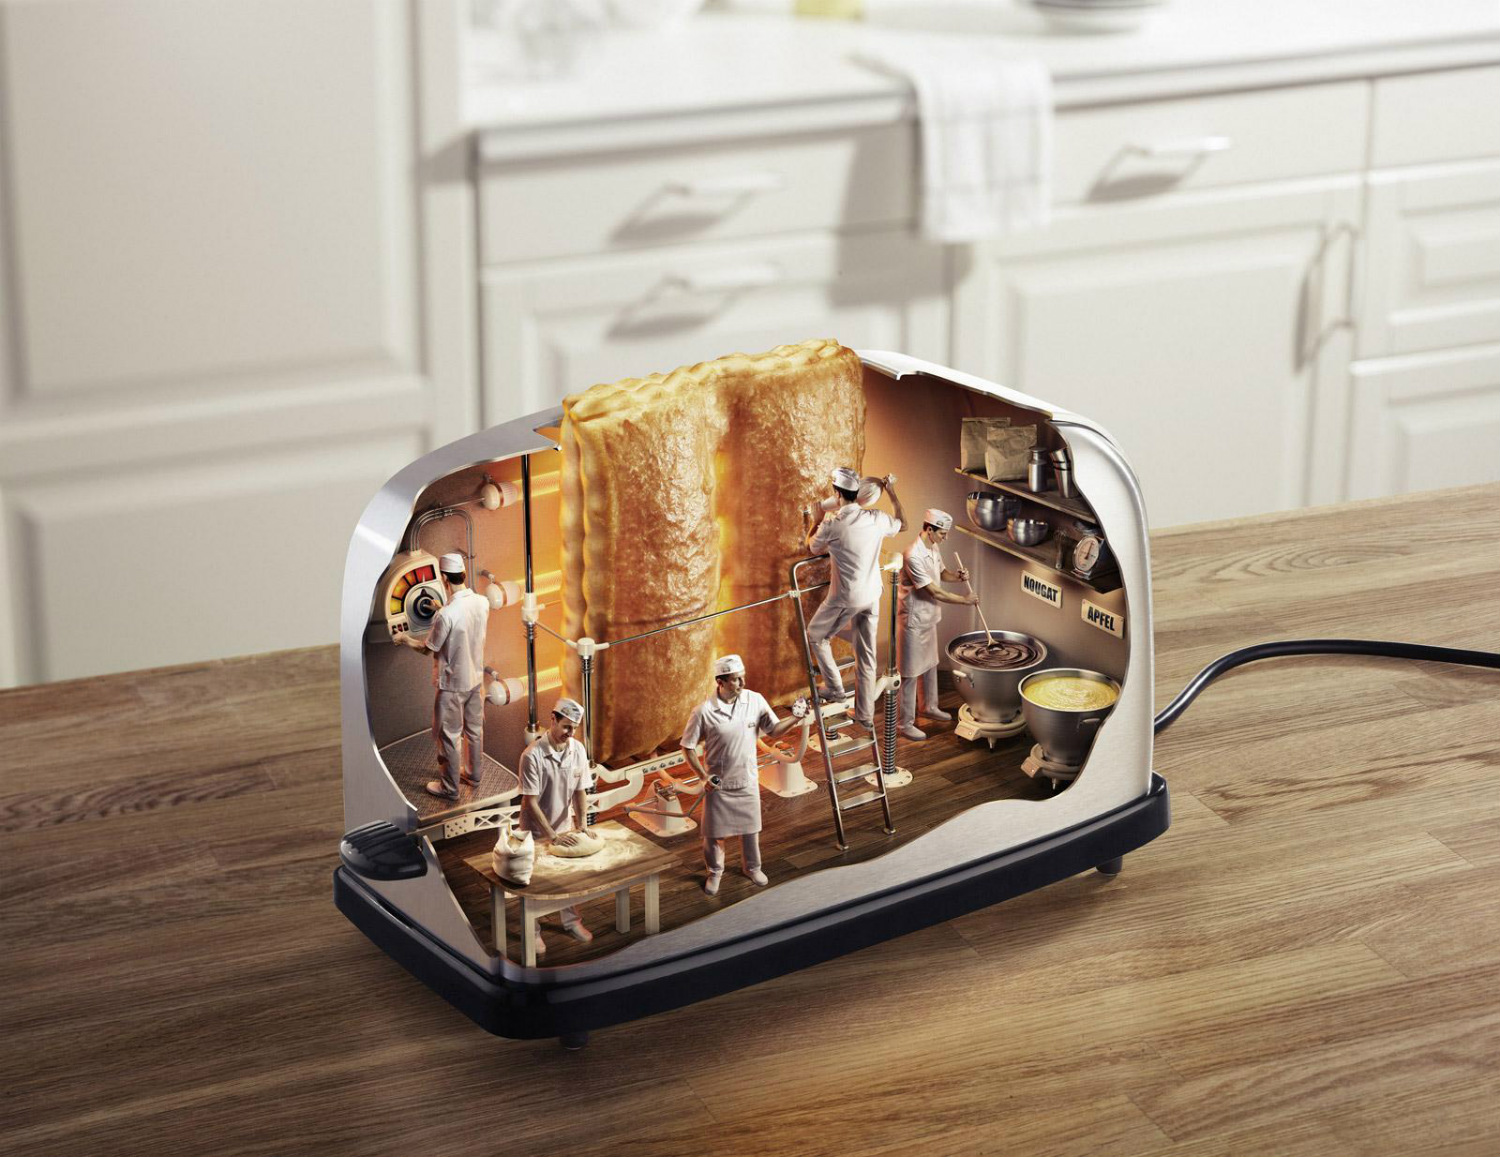 surreal photo manipulations digital toaster staudigner + franke